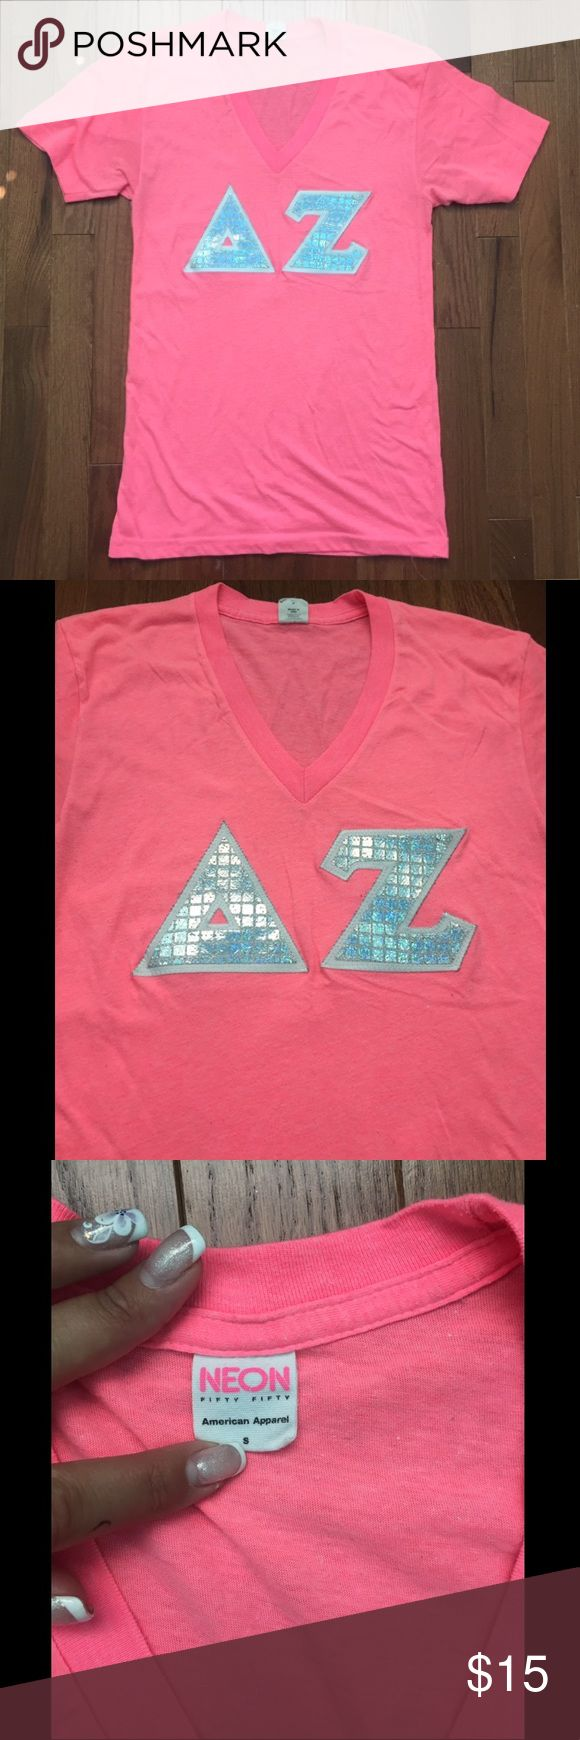 Delta Zeta American Apparel V-Neck 😍 Super cute silver Delta Zeta letters on a neon pink American Apparel V-Neck in a size small! Gently worn but some piling in the fabric from wear but still a great item 😍 American Apparel Tops Tees - Short Sleeve